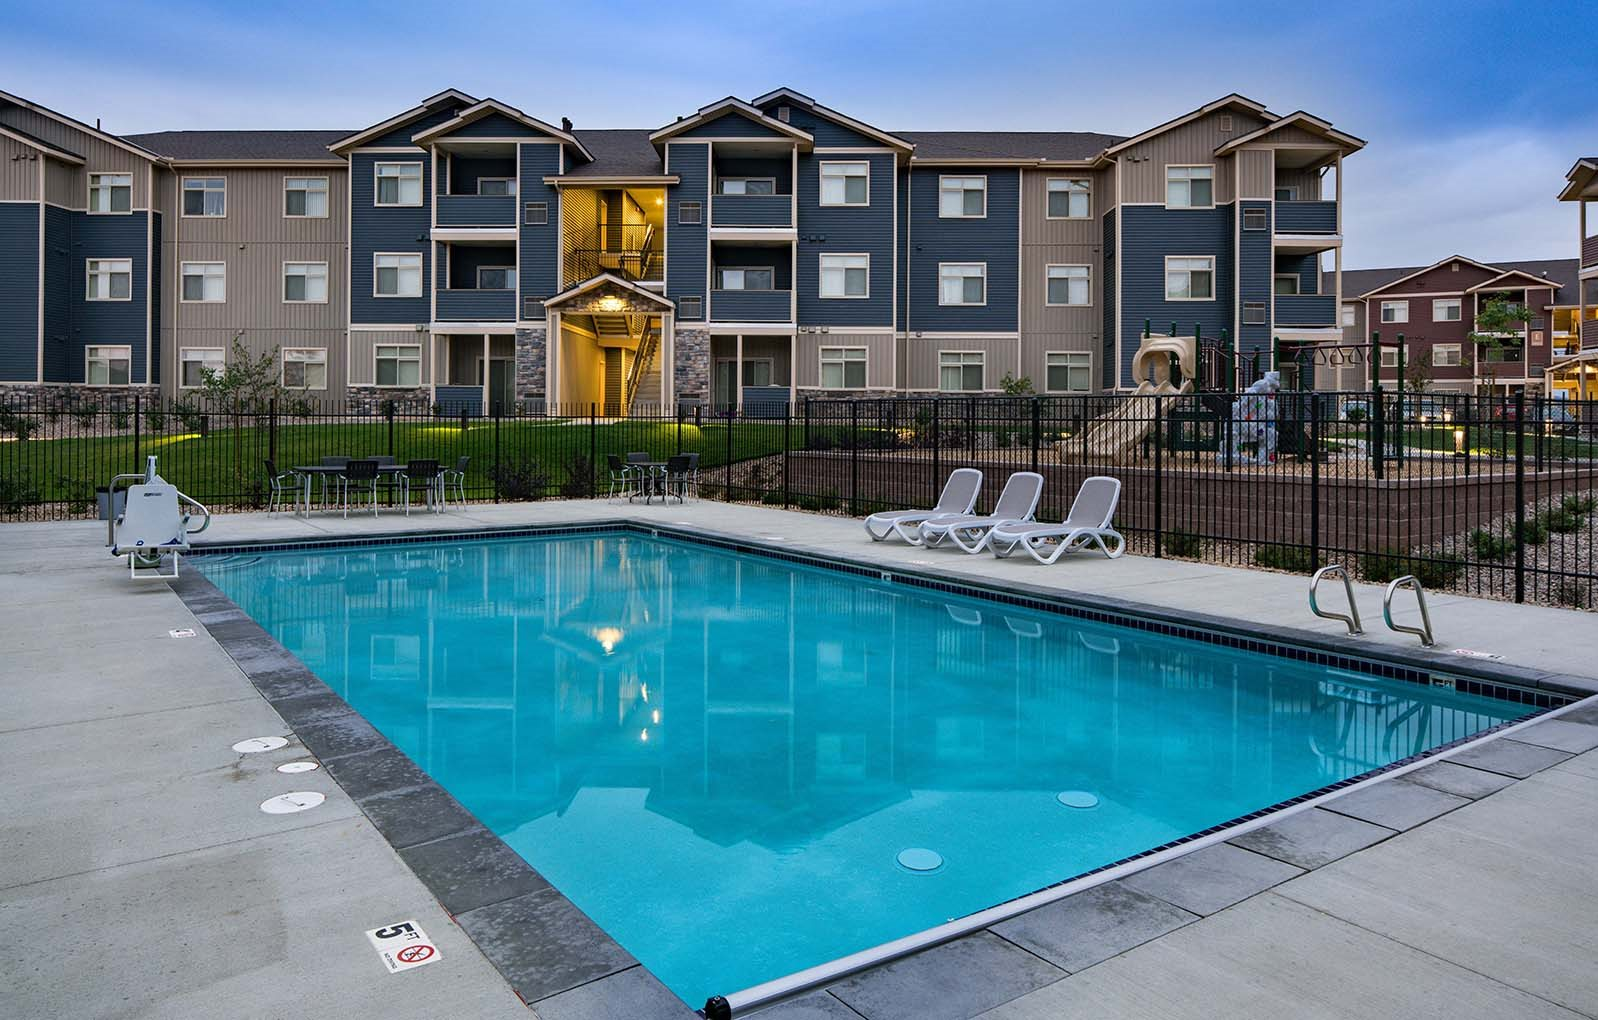 Pool with lounge chairs and apt buildings Lafayette, CO 80026 Apartments For Rent at Copper Stone